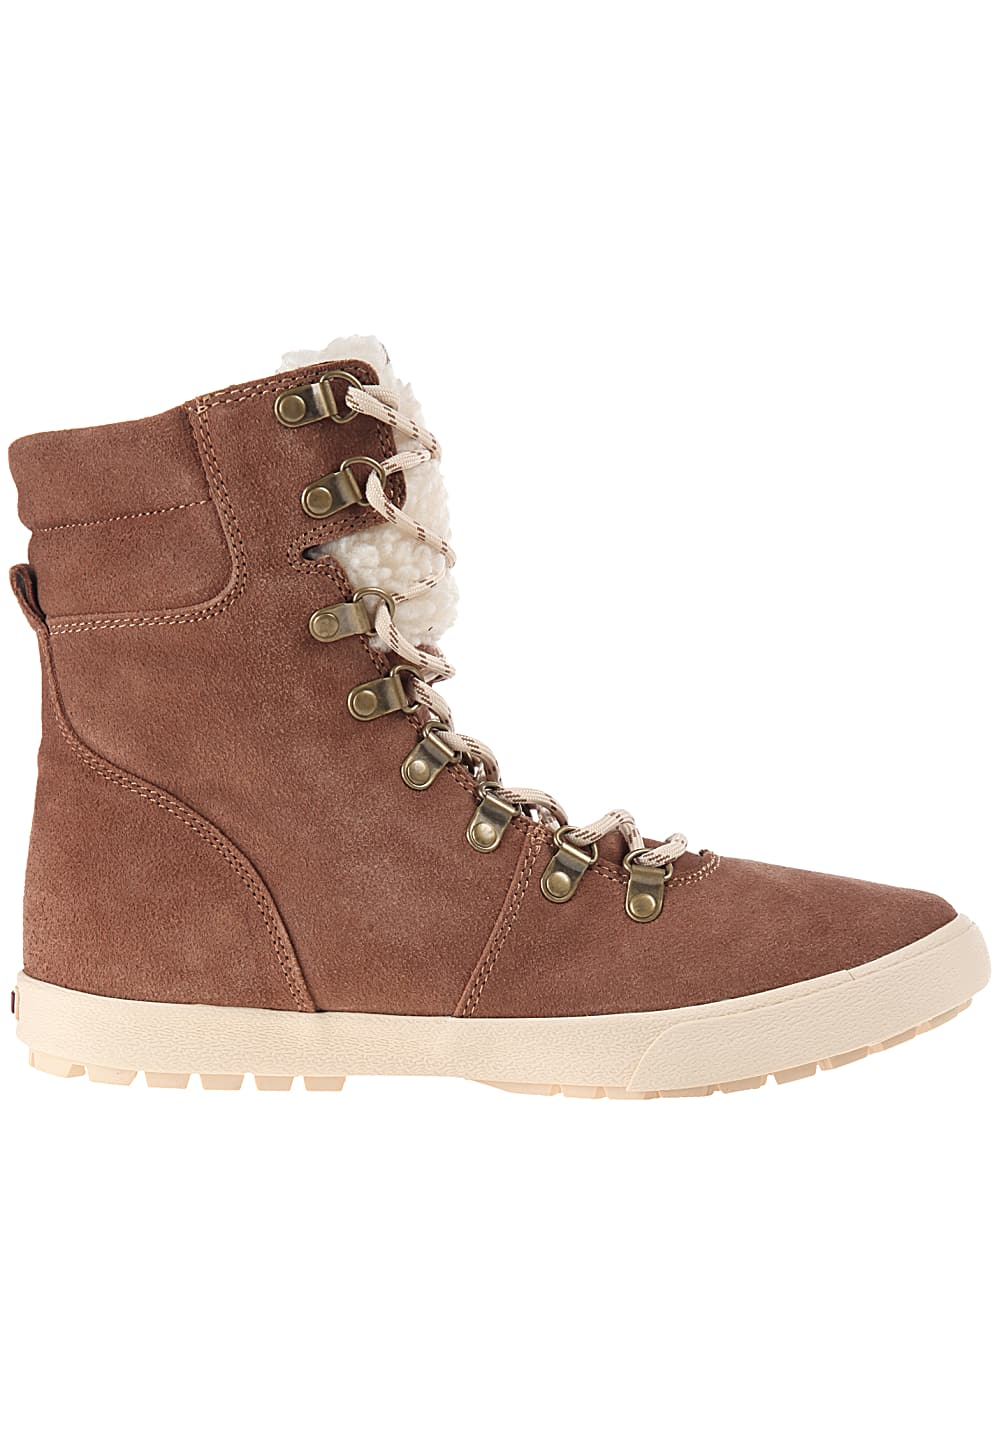 Anderson Roxy Marron Pour Bottines Femme Ye2IbED9WH